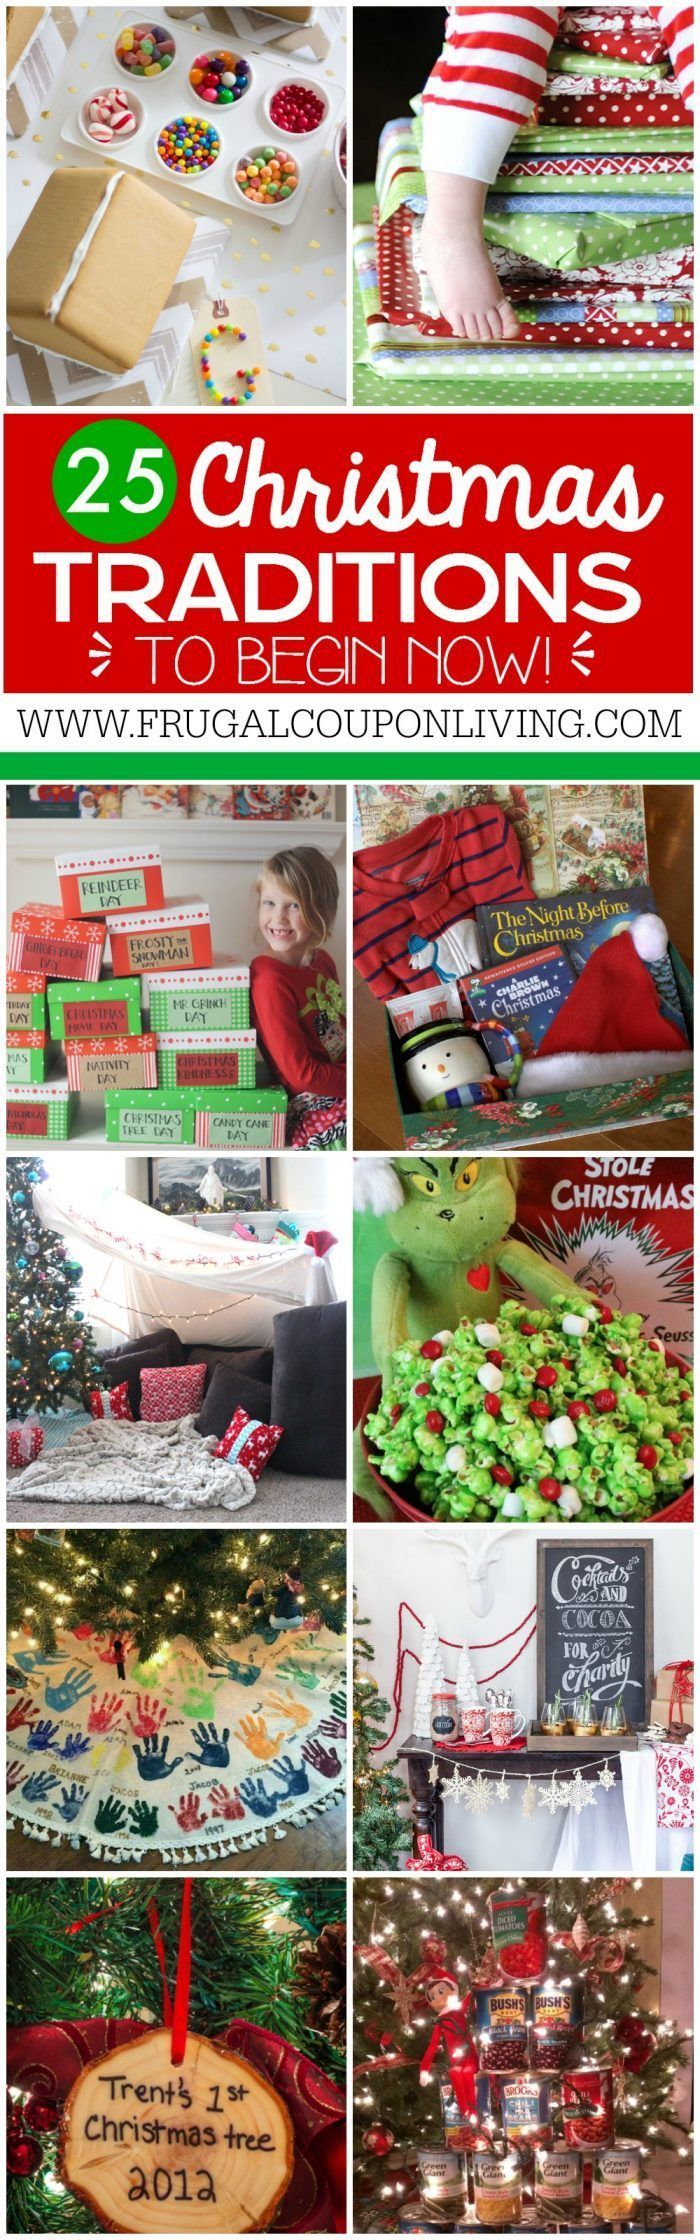 25 Christmas Traditions to start right now and pass down for years to come. I love the daily wrapped Christmas books idea. Ideas on Frugal Coupon Living as well has homemade advent calendars and Elf on the Shelf Ideas.